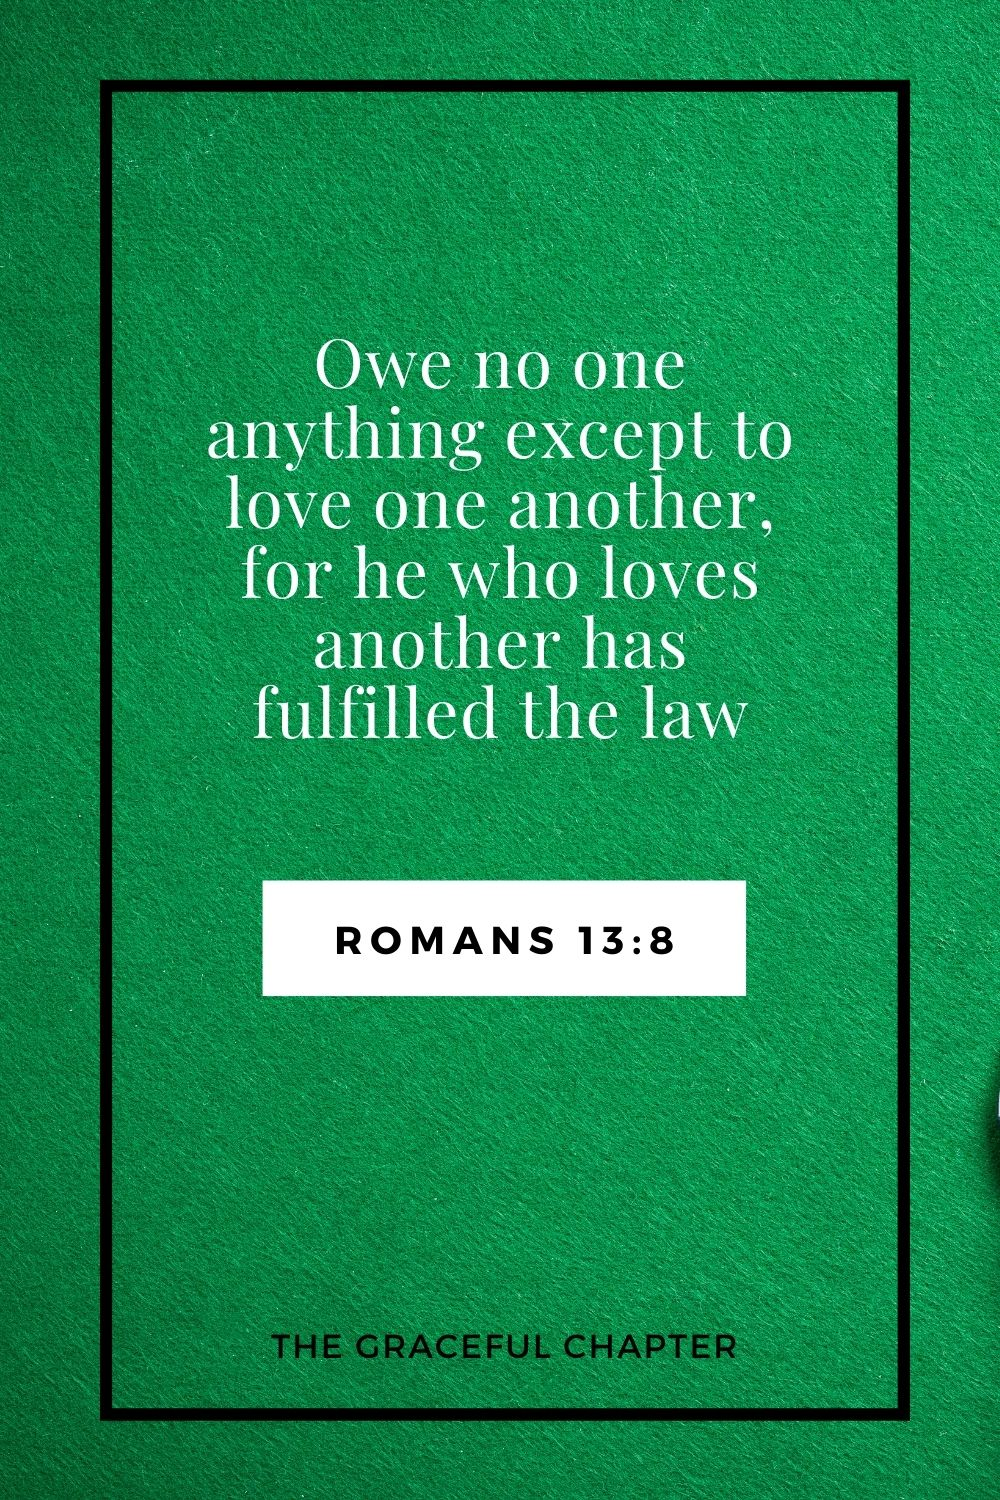 Owe no one anything except to love one another, for he who loves another has fulfilled the law .Romans 13:8